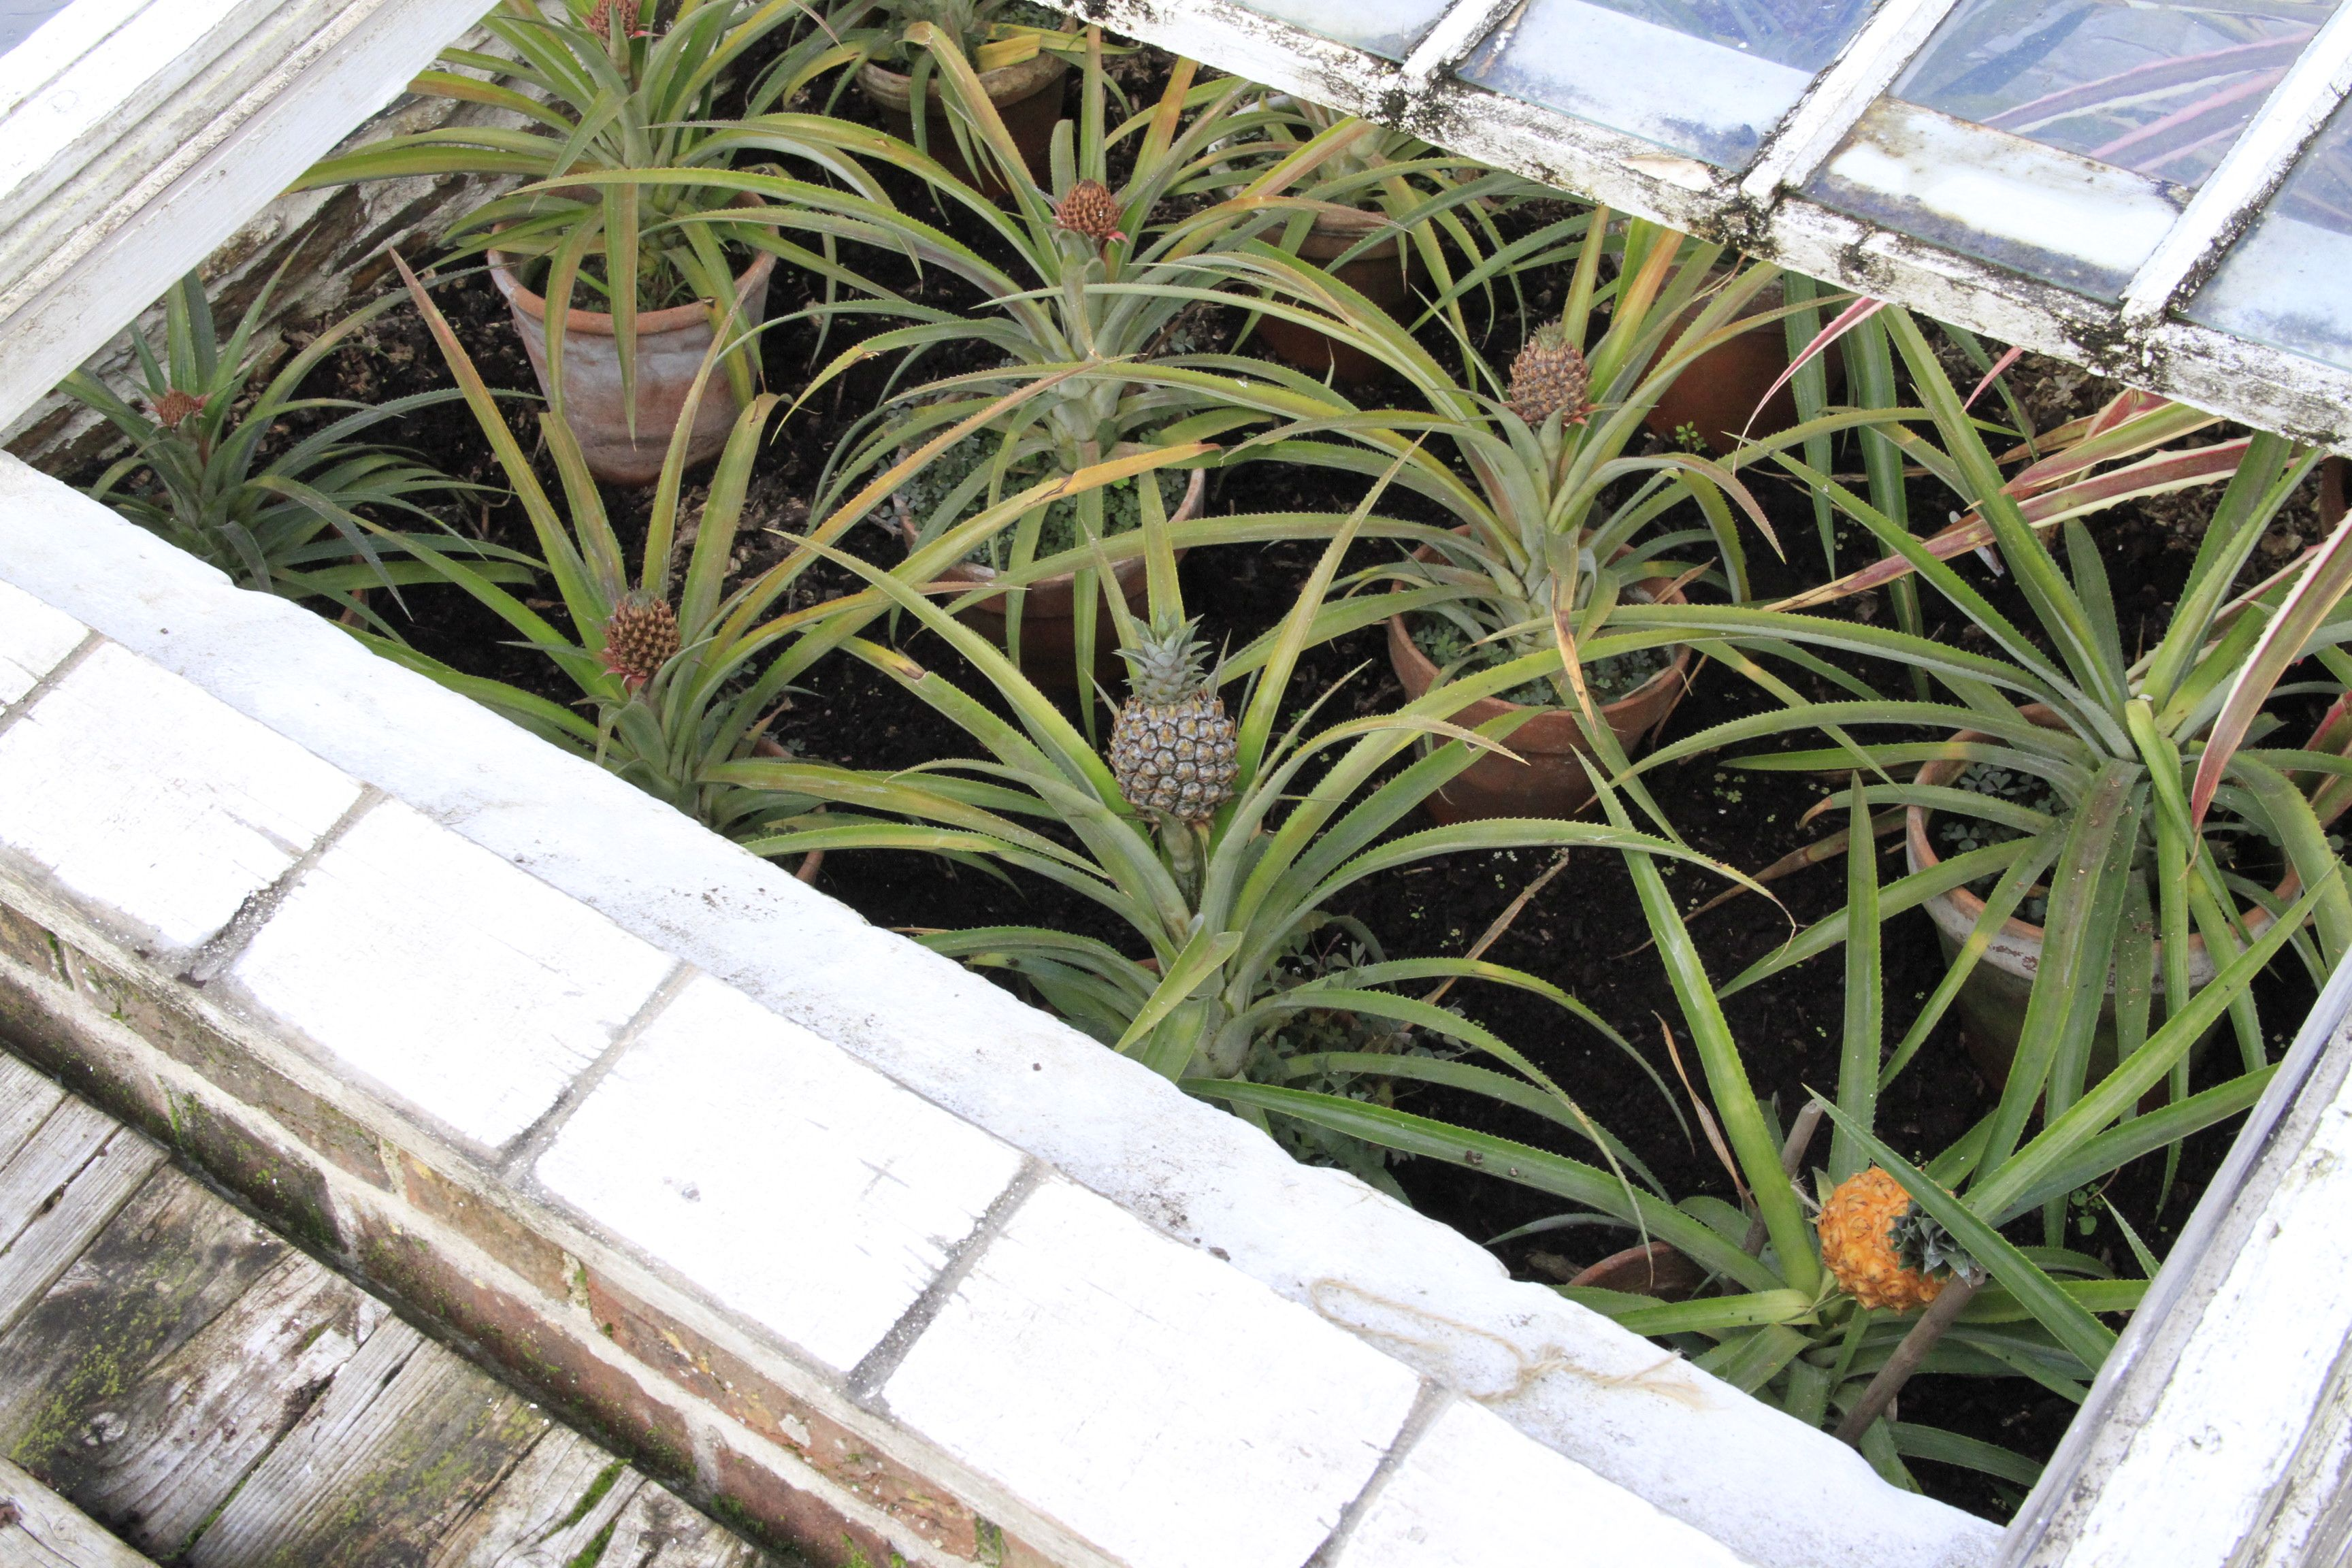 c5edd45ea5b453882466ac7a7da1a7e7 - Pineapples From The Lost Gardens Of Heligan